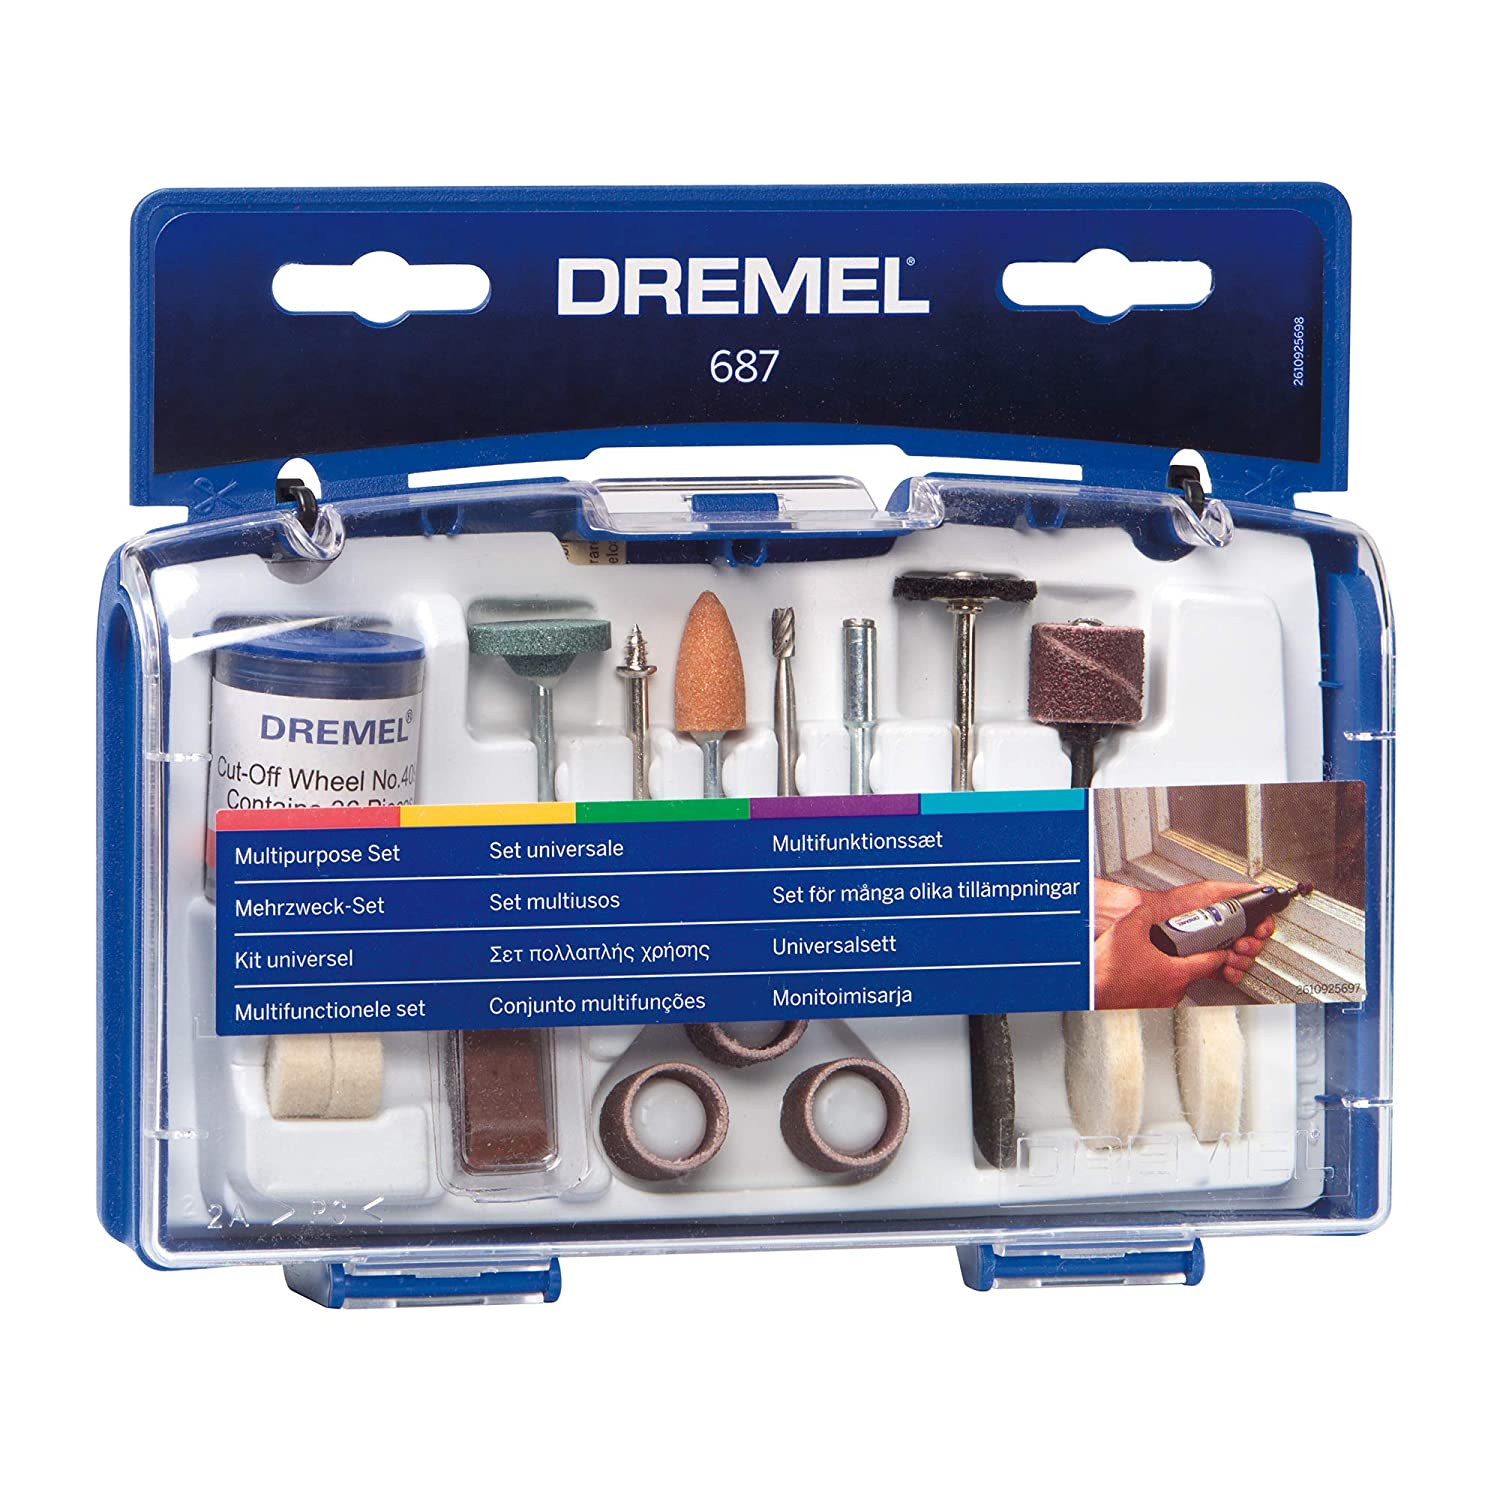 Dremel 687-01 52-Piece General Purpose Rotary Tool Accessory KitWith Case